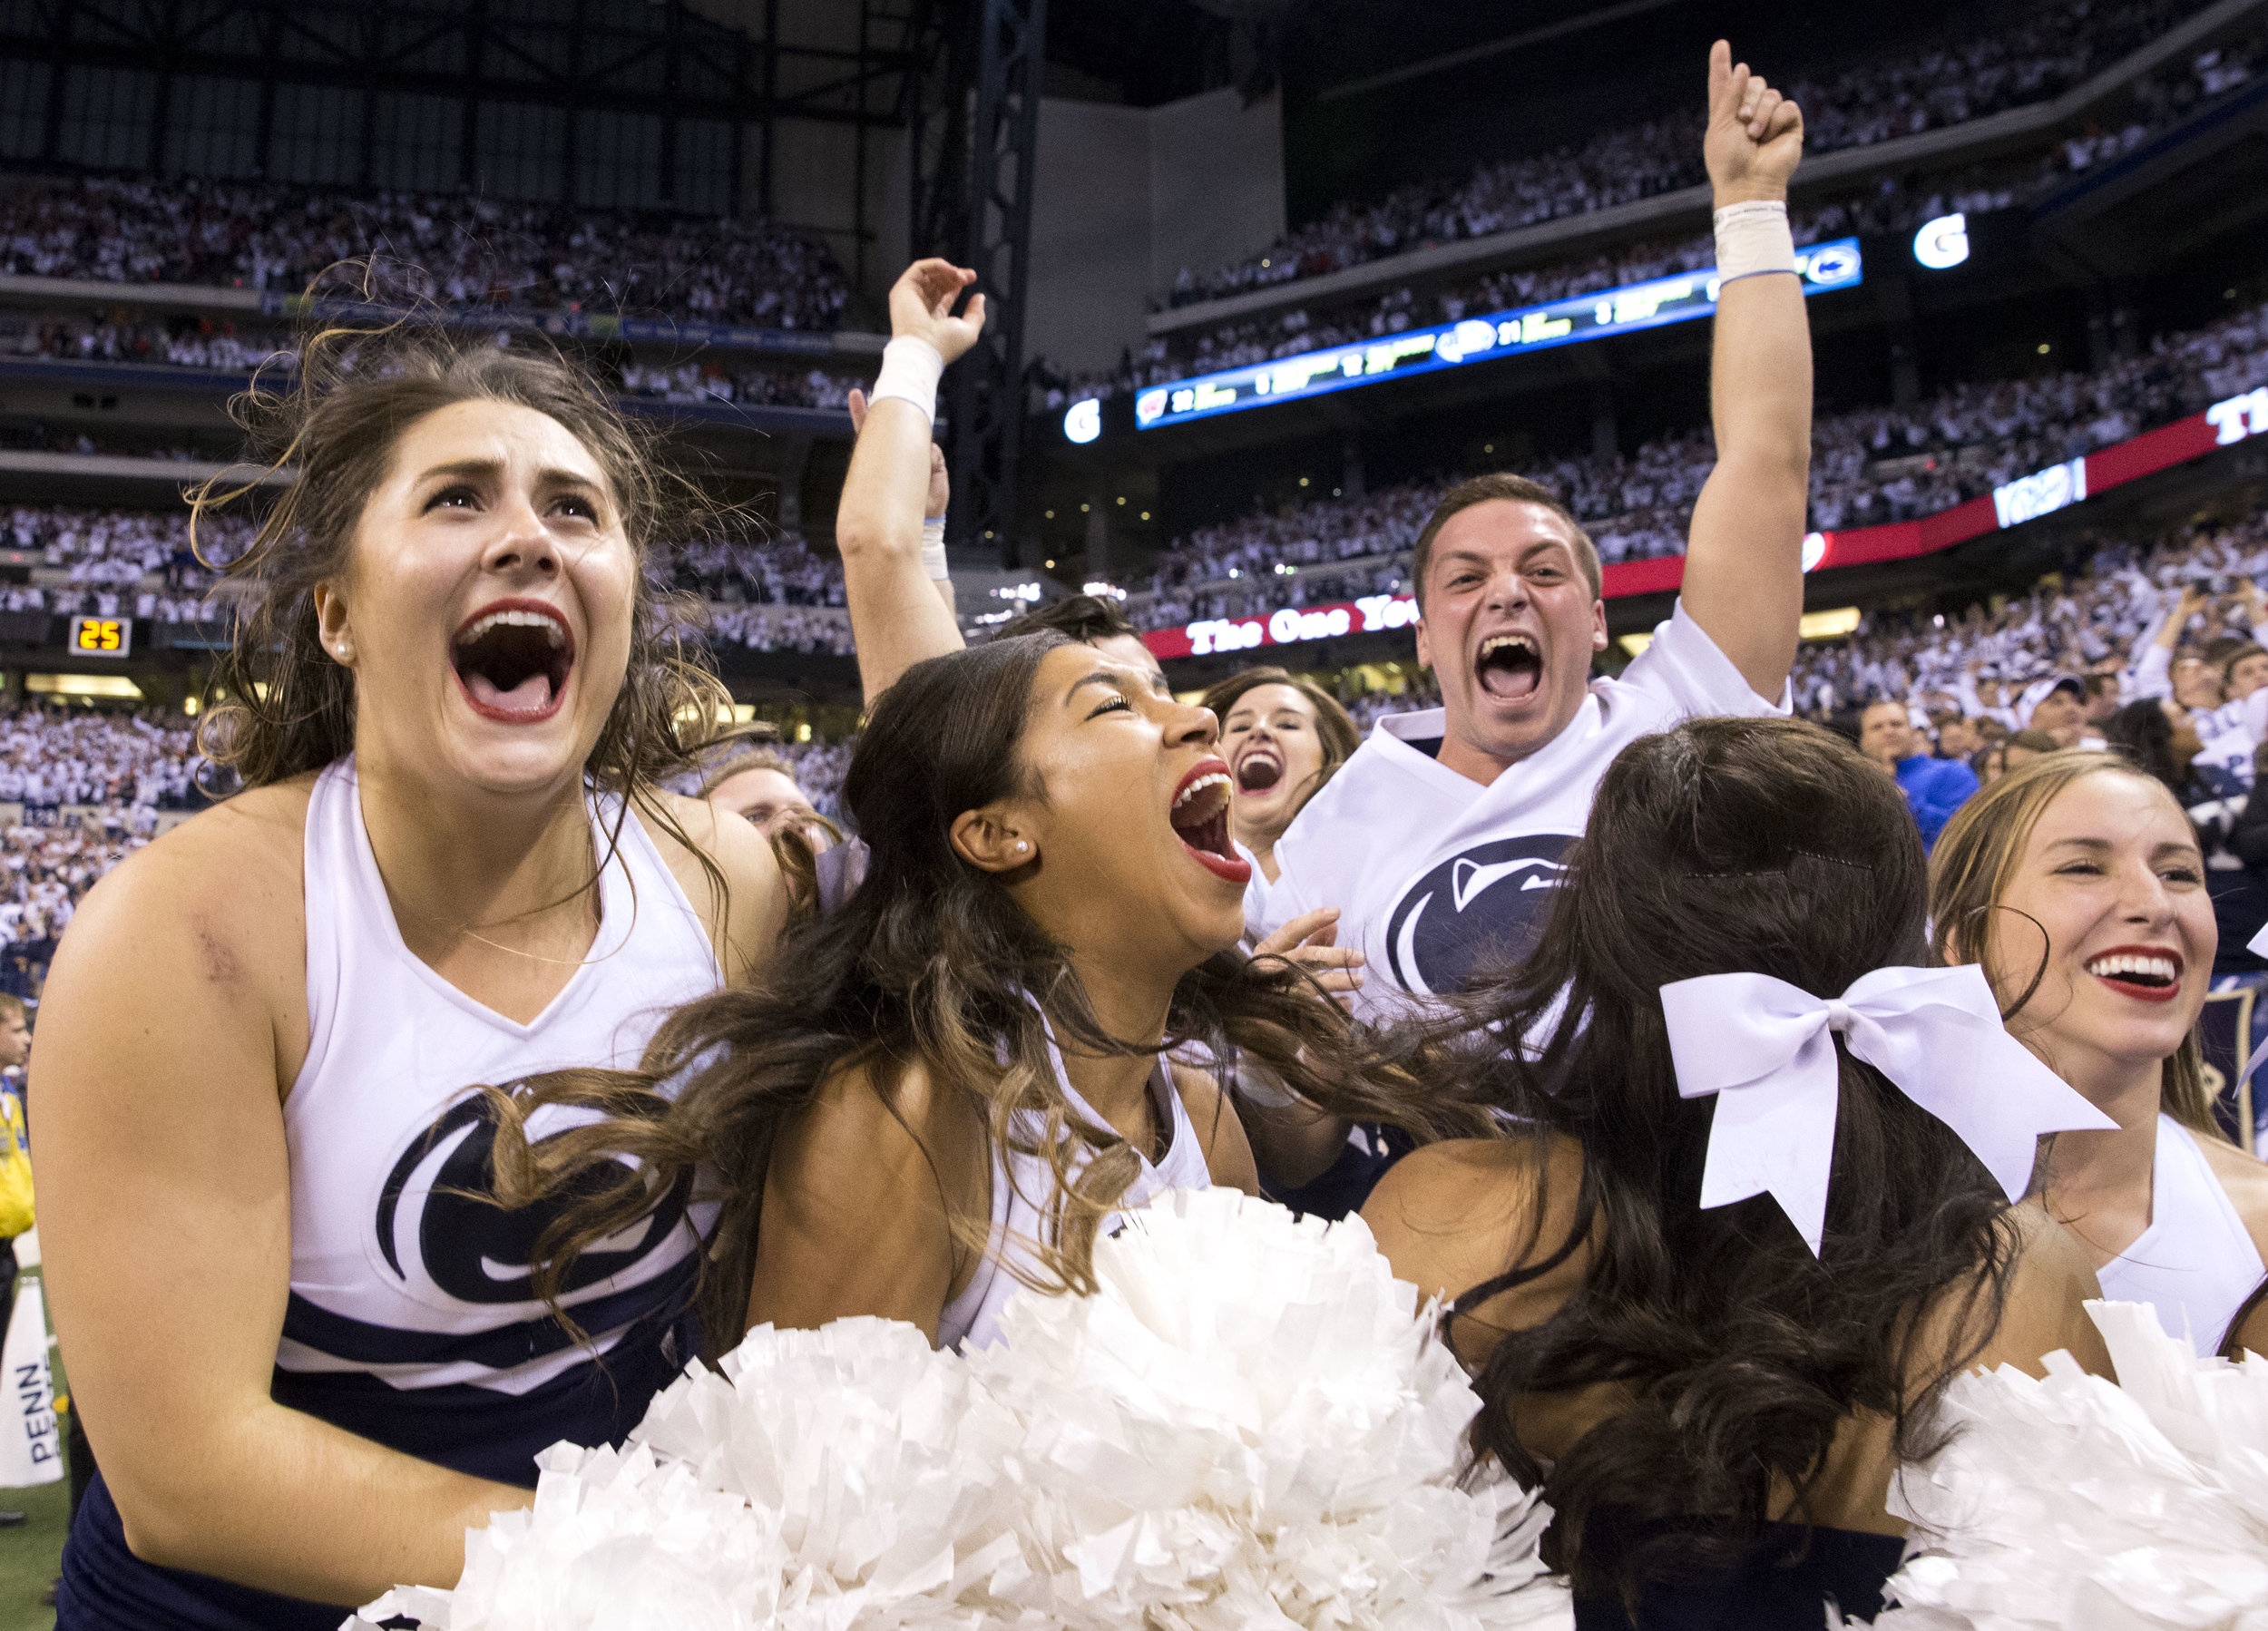 Penn State cheerleaders react after seeing the final minutes in the fourth quarter and realizing that Penn State would be the Big Ten Champions during the Big Ten Football Championship Game between Penn State and Wisconsin at Lucas Oil Stadium in Indianapolis, Ind., on Saturday, Dec. 3, 2016. Penn State defeated Wisconsin 38-31.